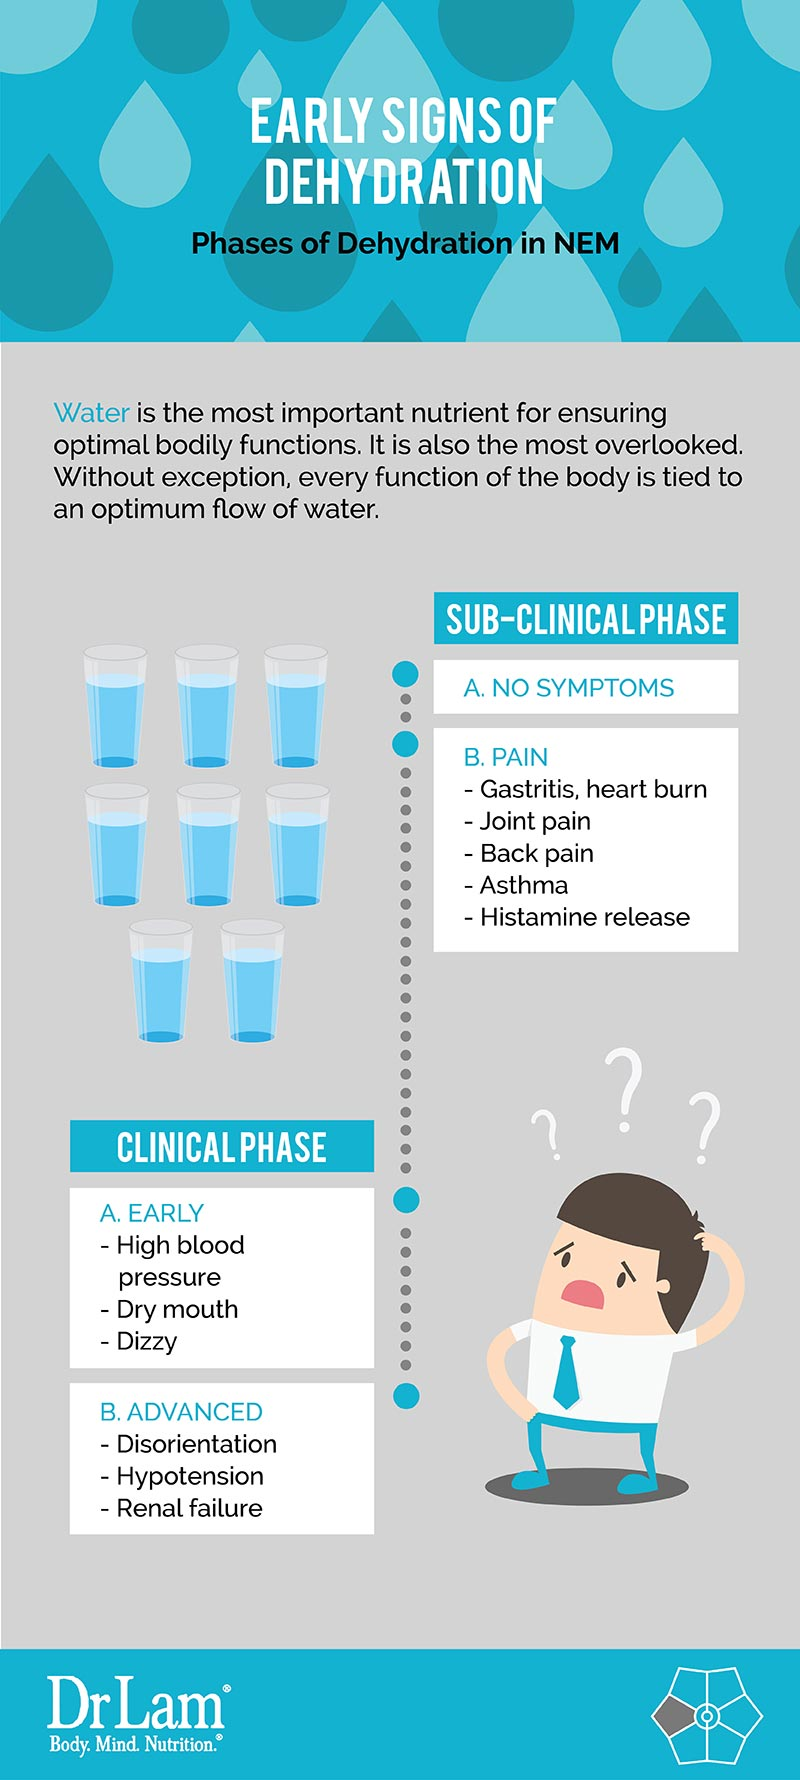 Check out this easy to understand infographic about the early signs of dehydration